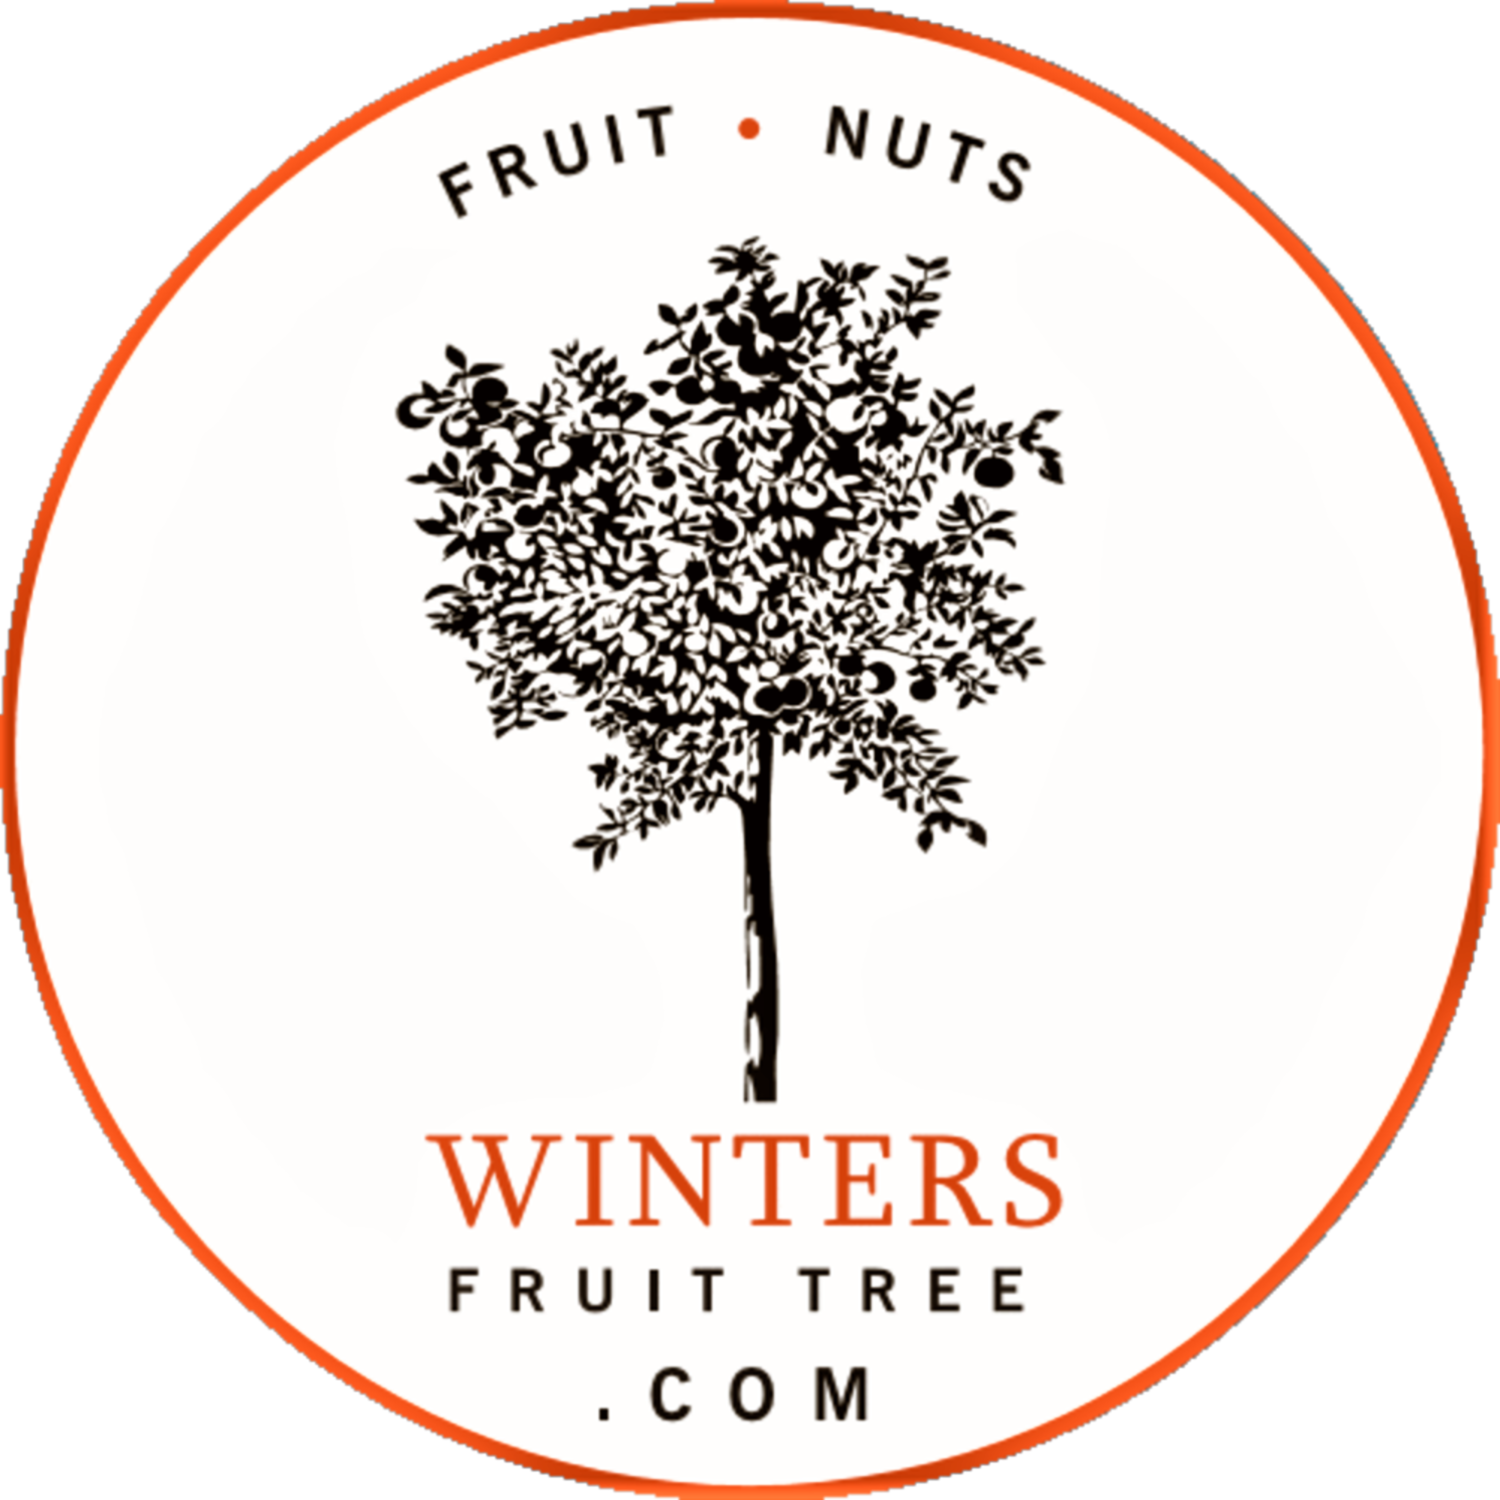 Winters Fruit Tree